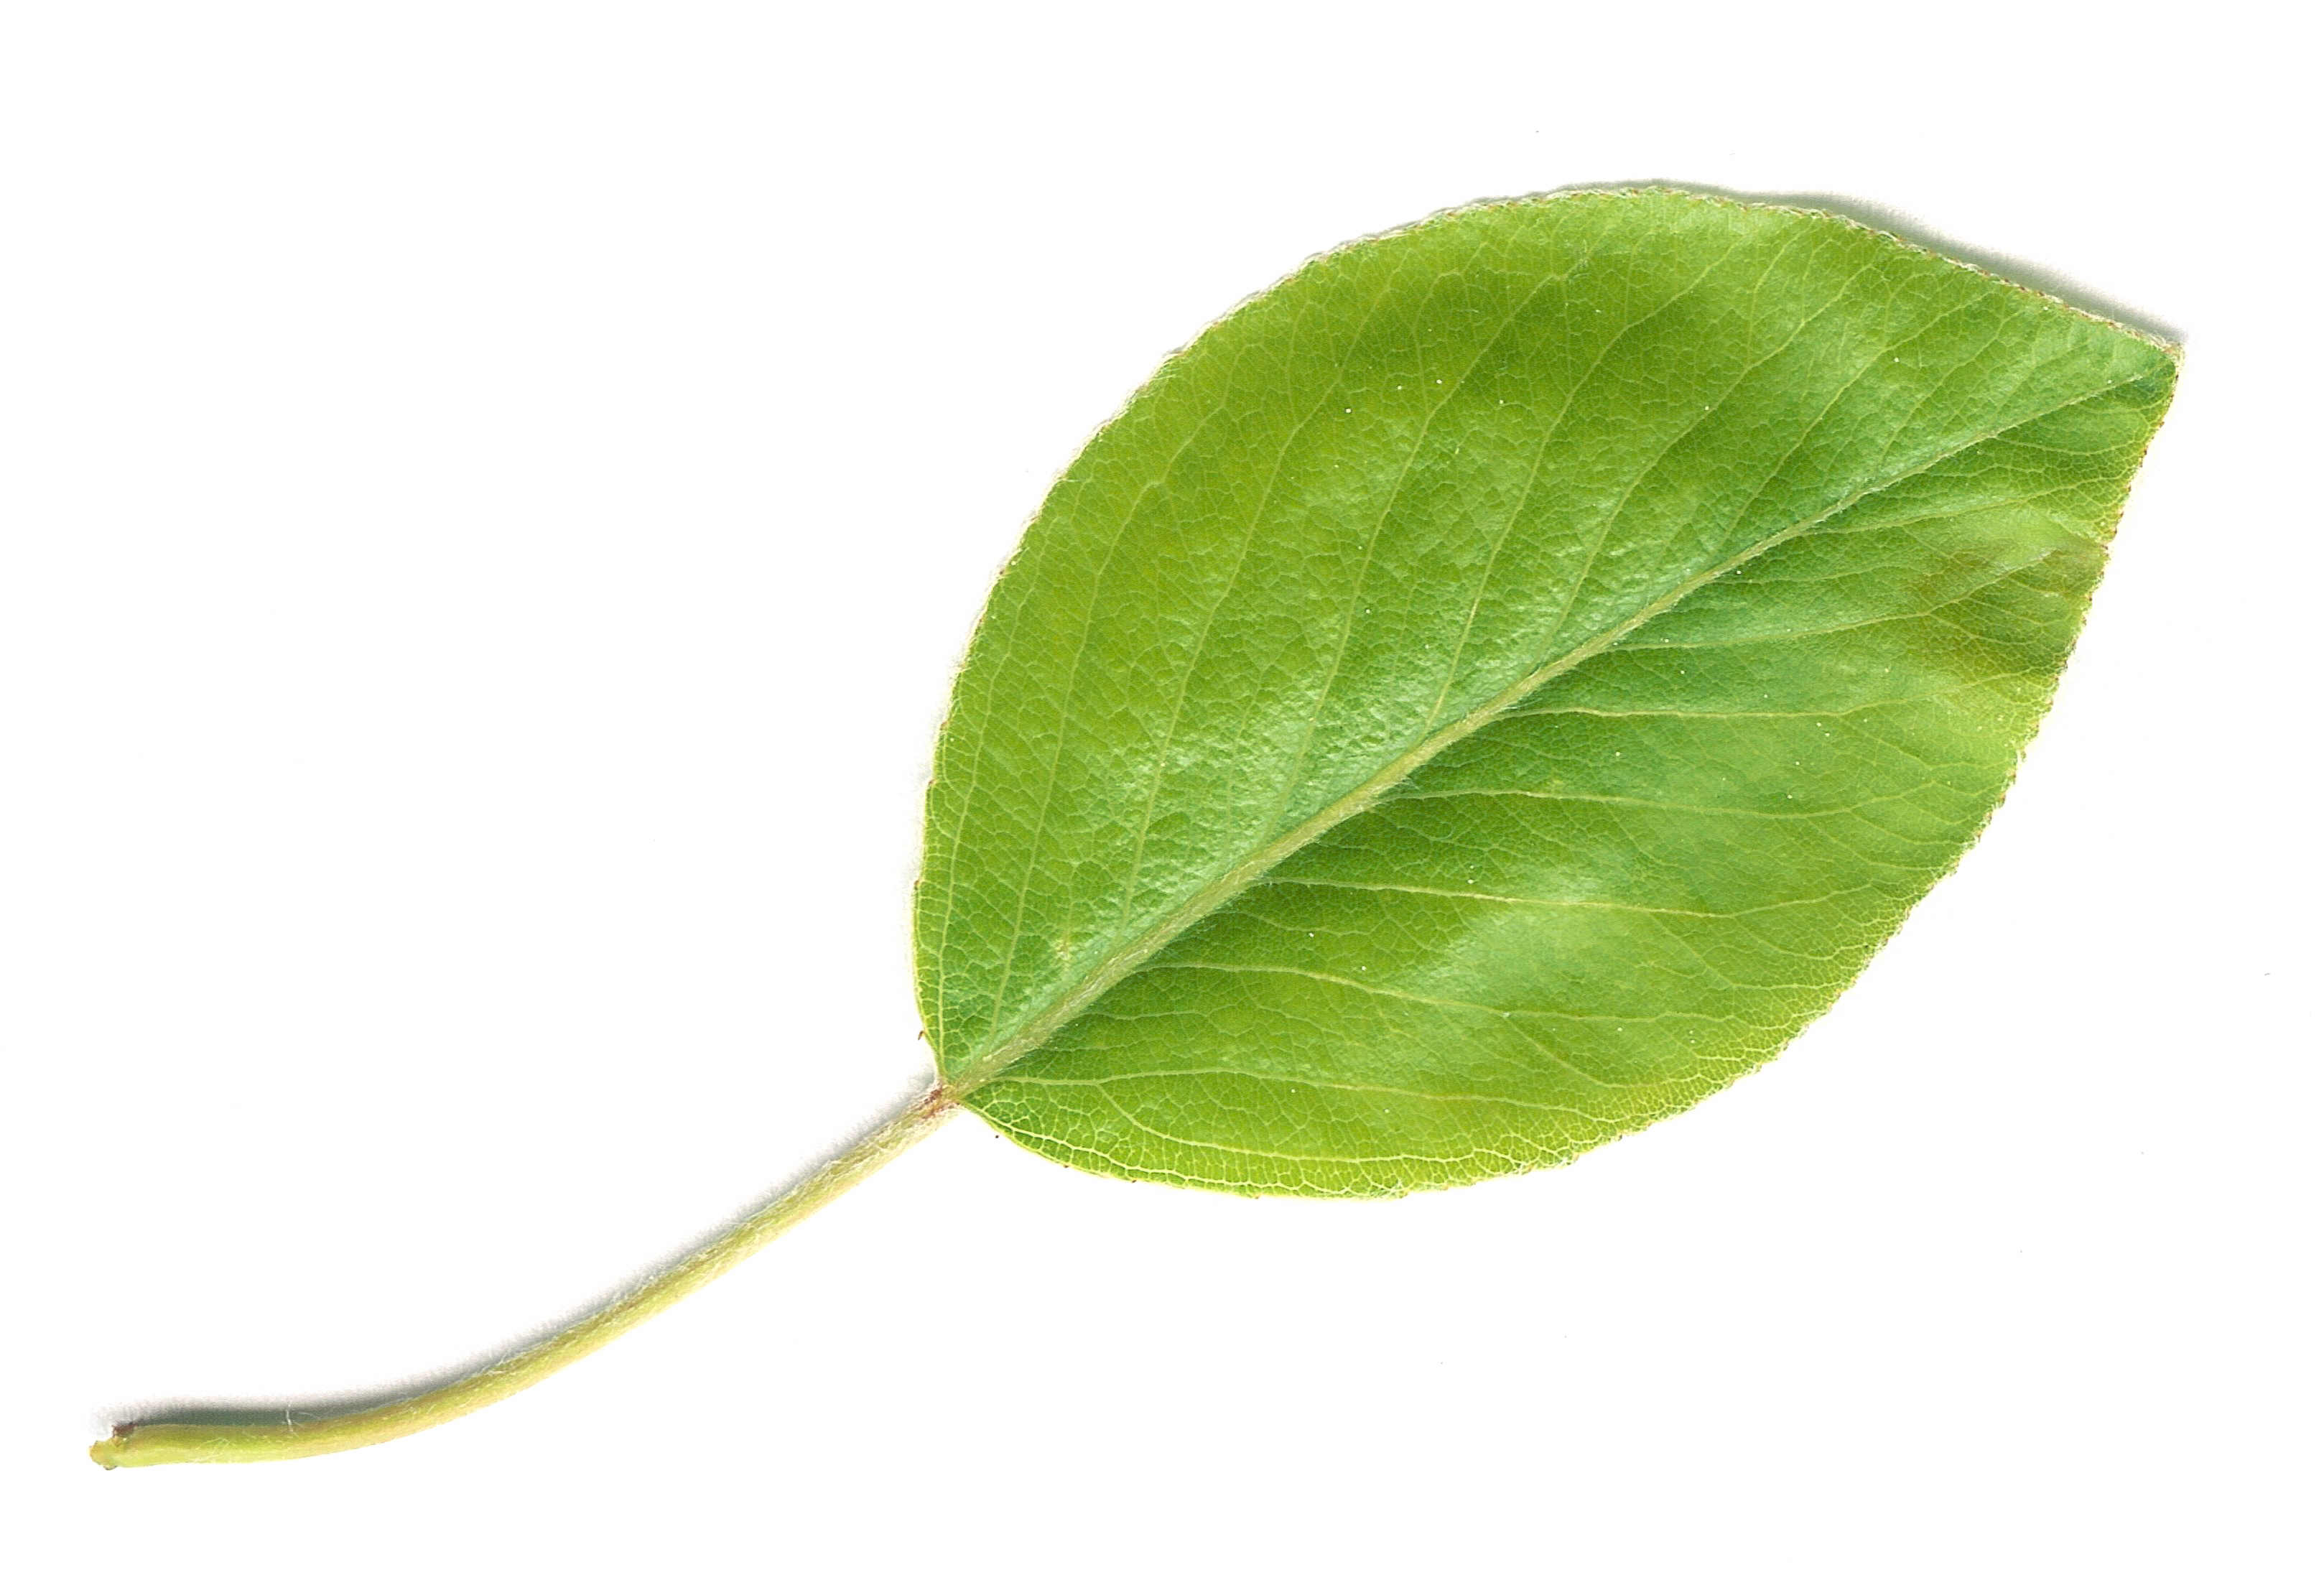 File Pear Leaf jpg